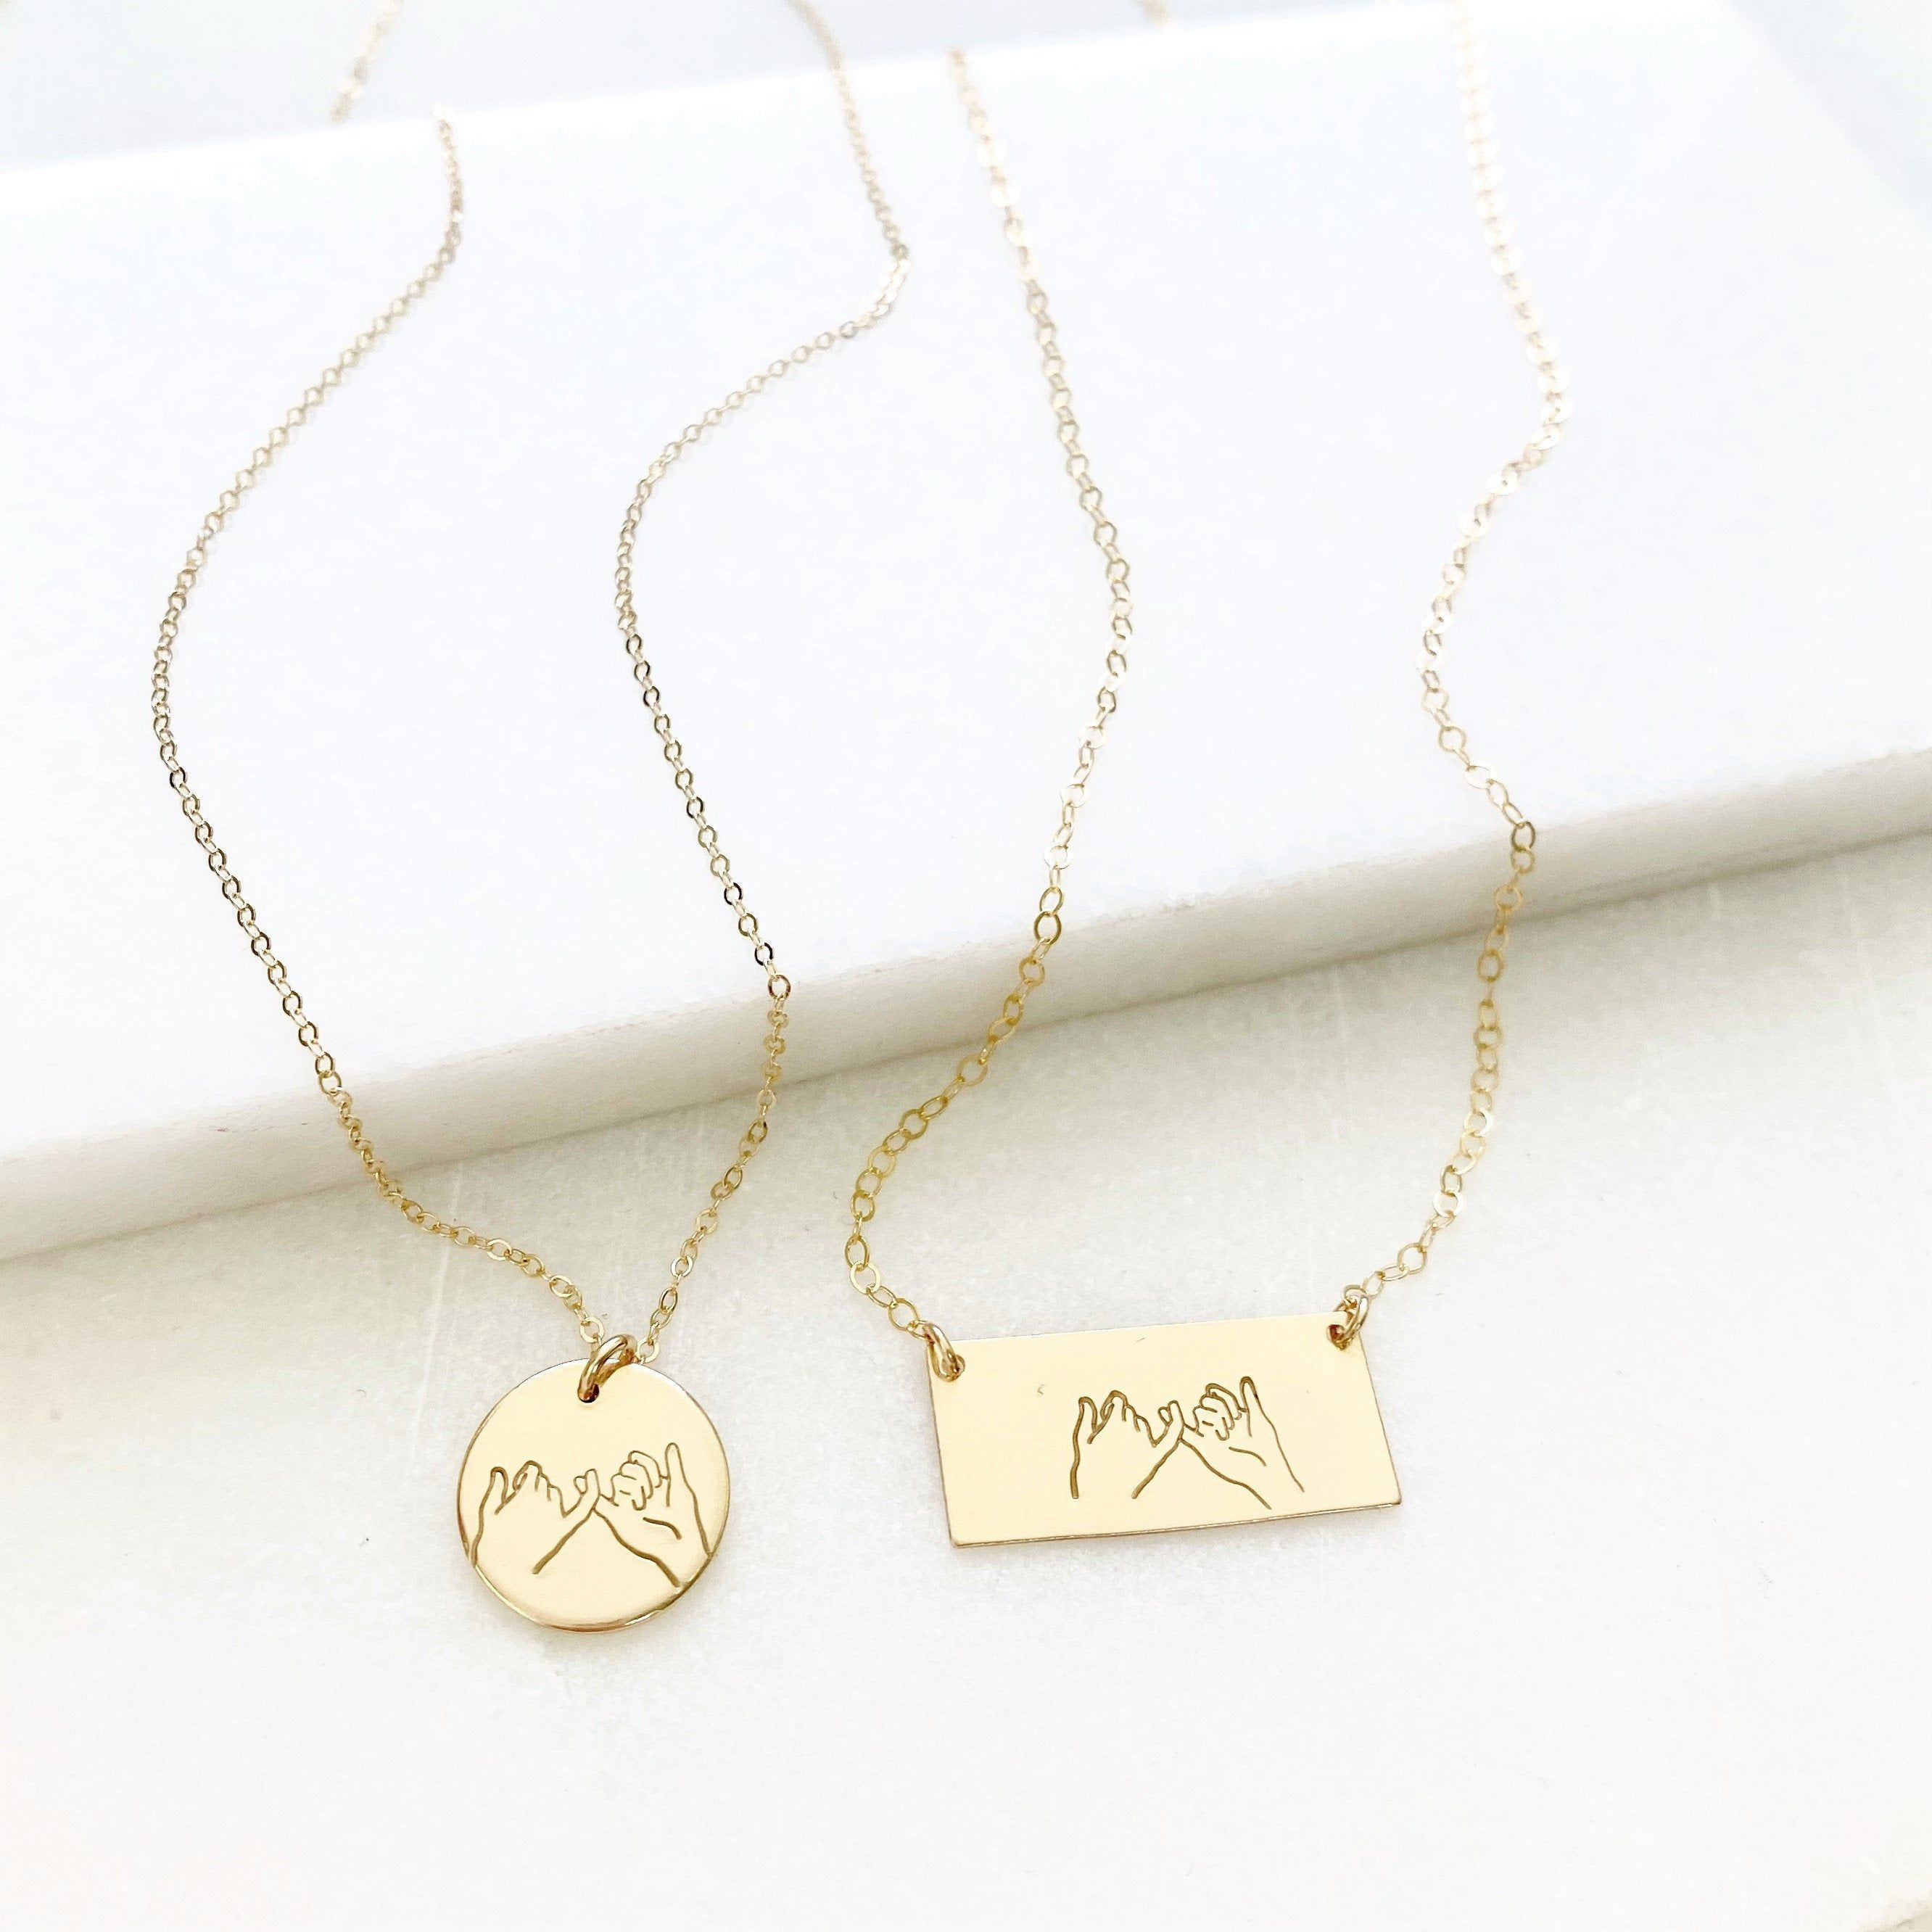 Rainbow Necklace Meaningful Gift for Friend Simple Gold Necklace